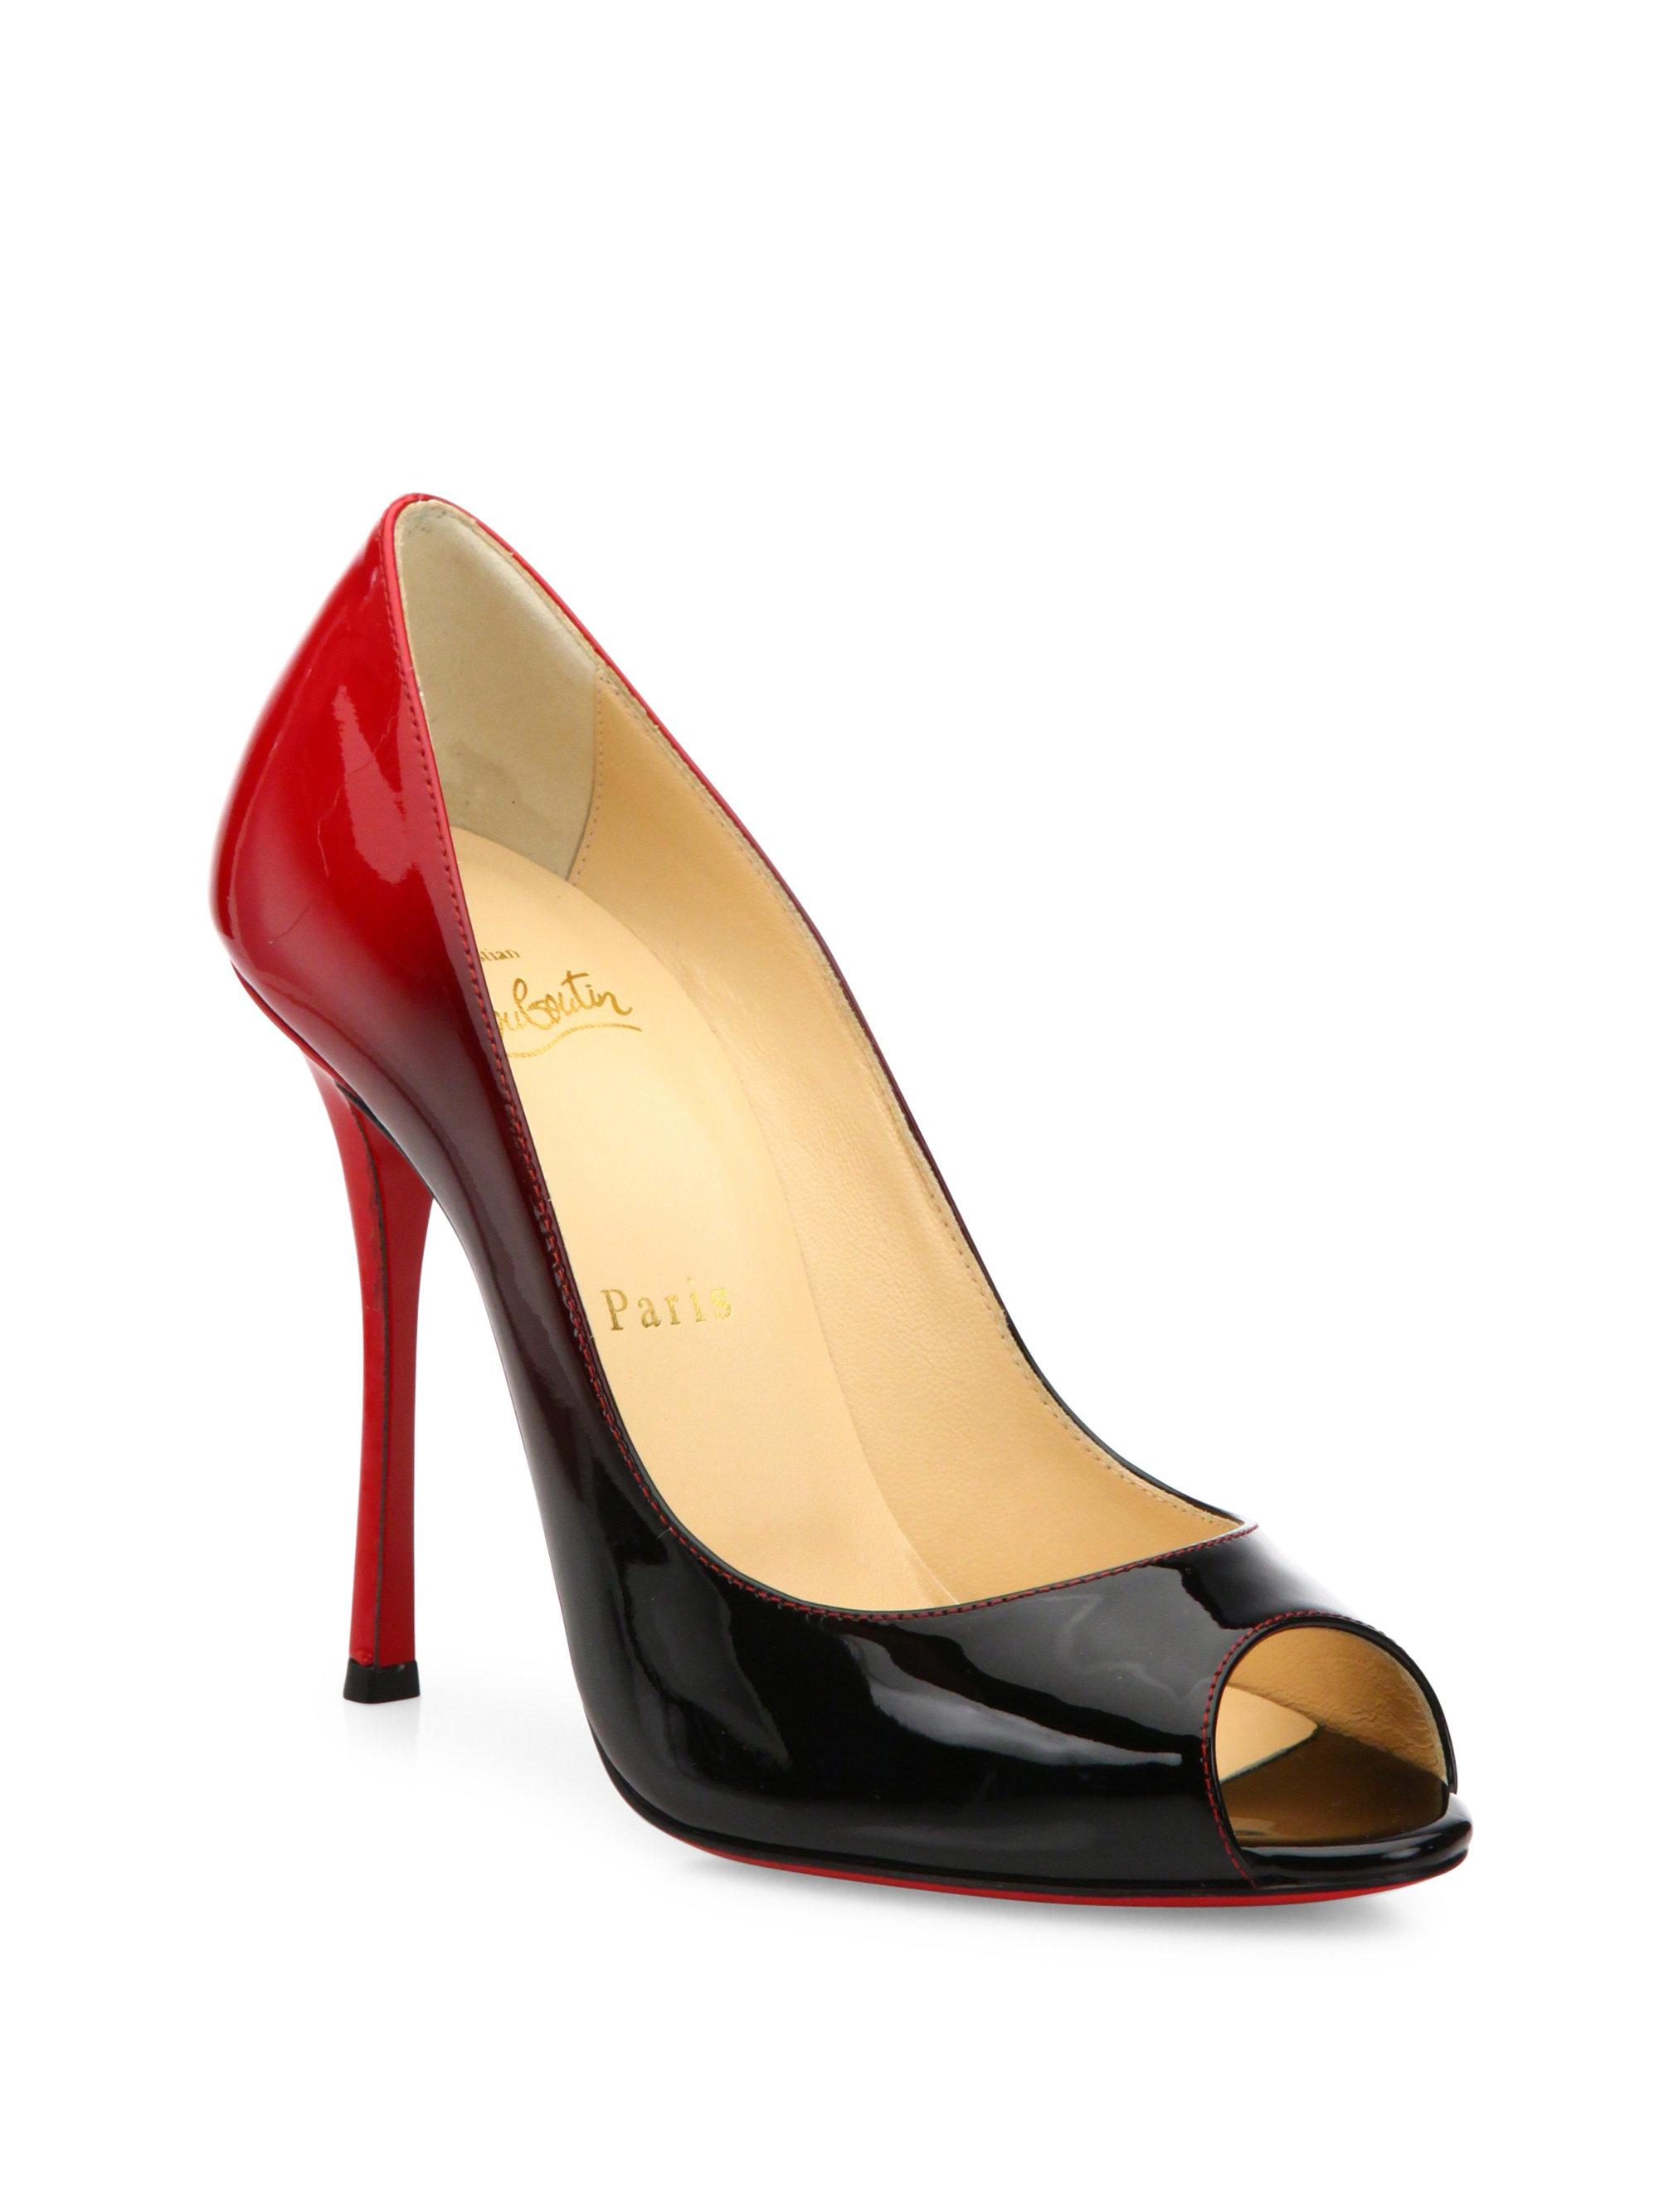 buy popular 280a6 ad817 Christian Louboutin Black Yootish 100 Ombre Patent Leather Peep Toe Pumps